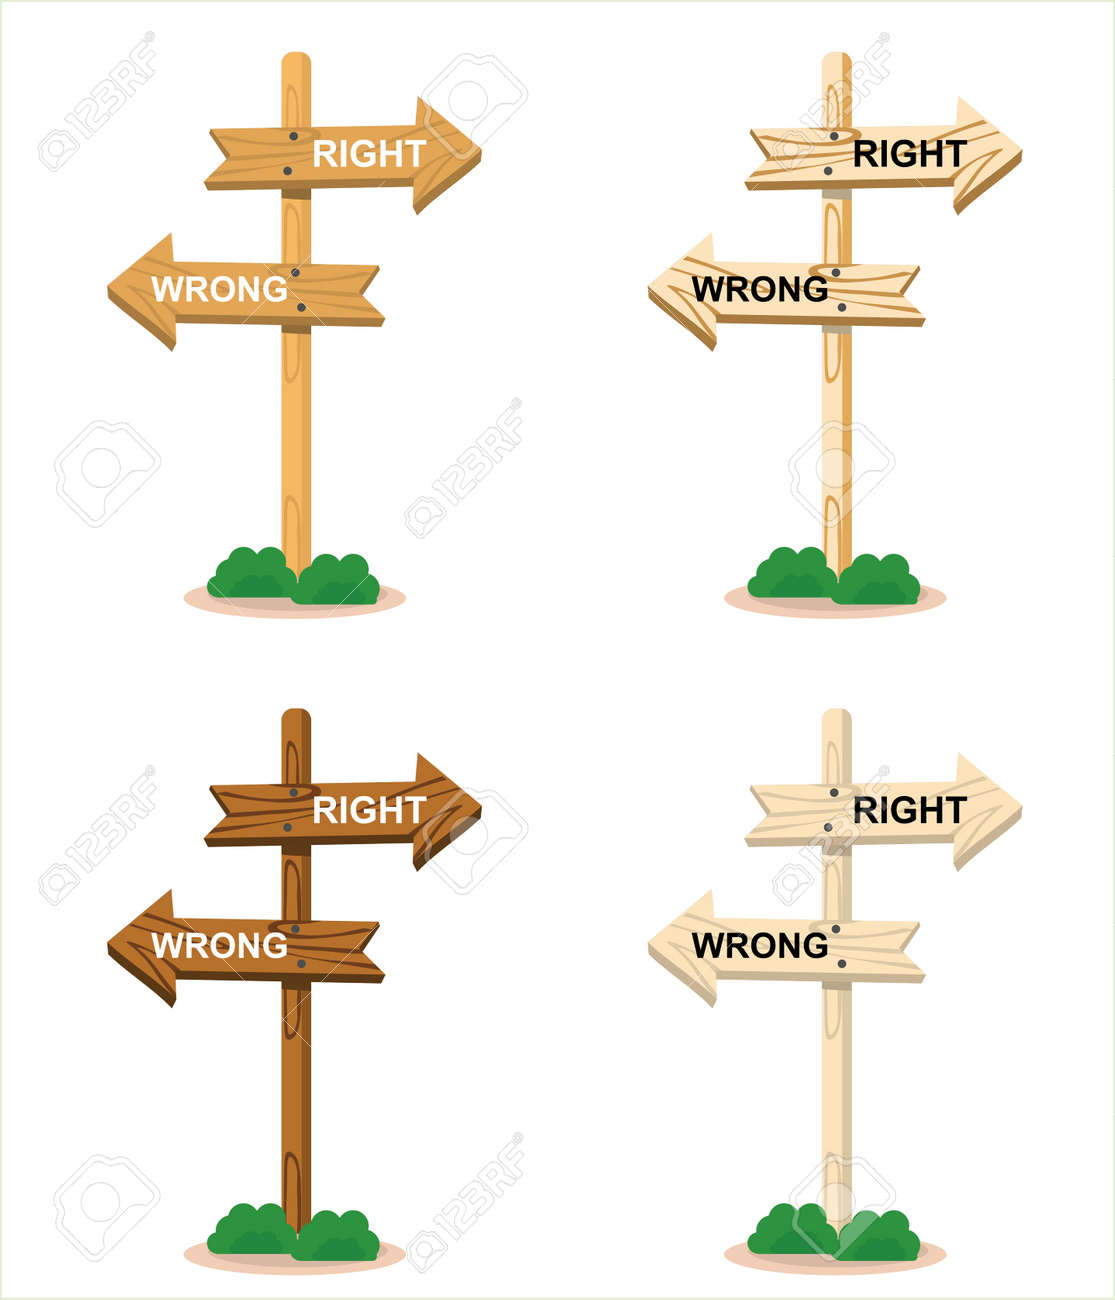 Vector illustration set of wooden directional arrows showing right and wrong directions, logo and icon, holiday and travel themes, perfect for travel advertisements - 166826958